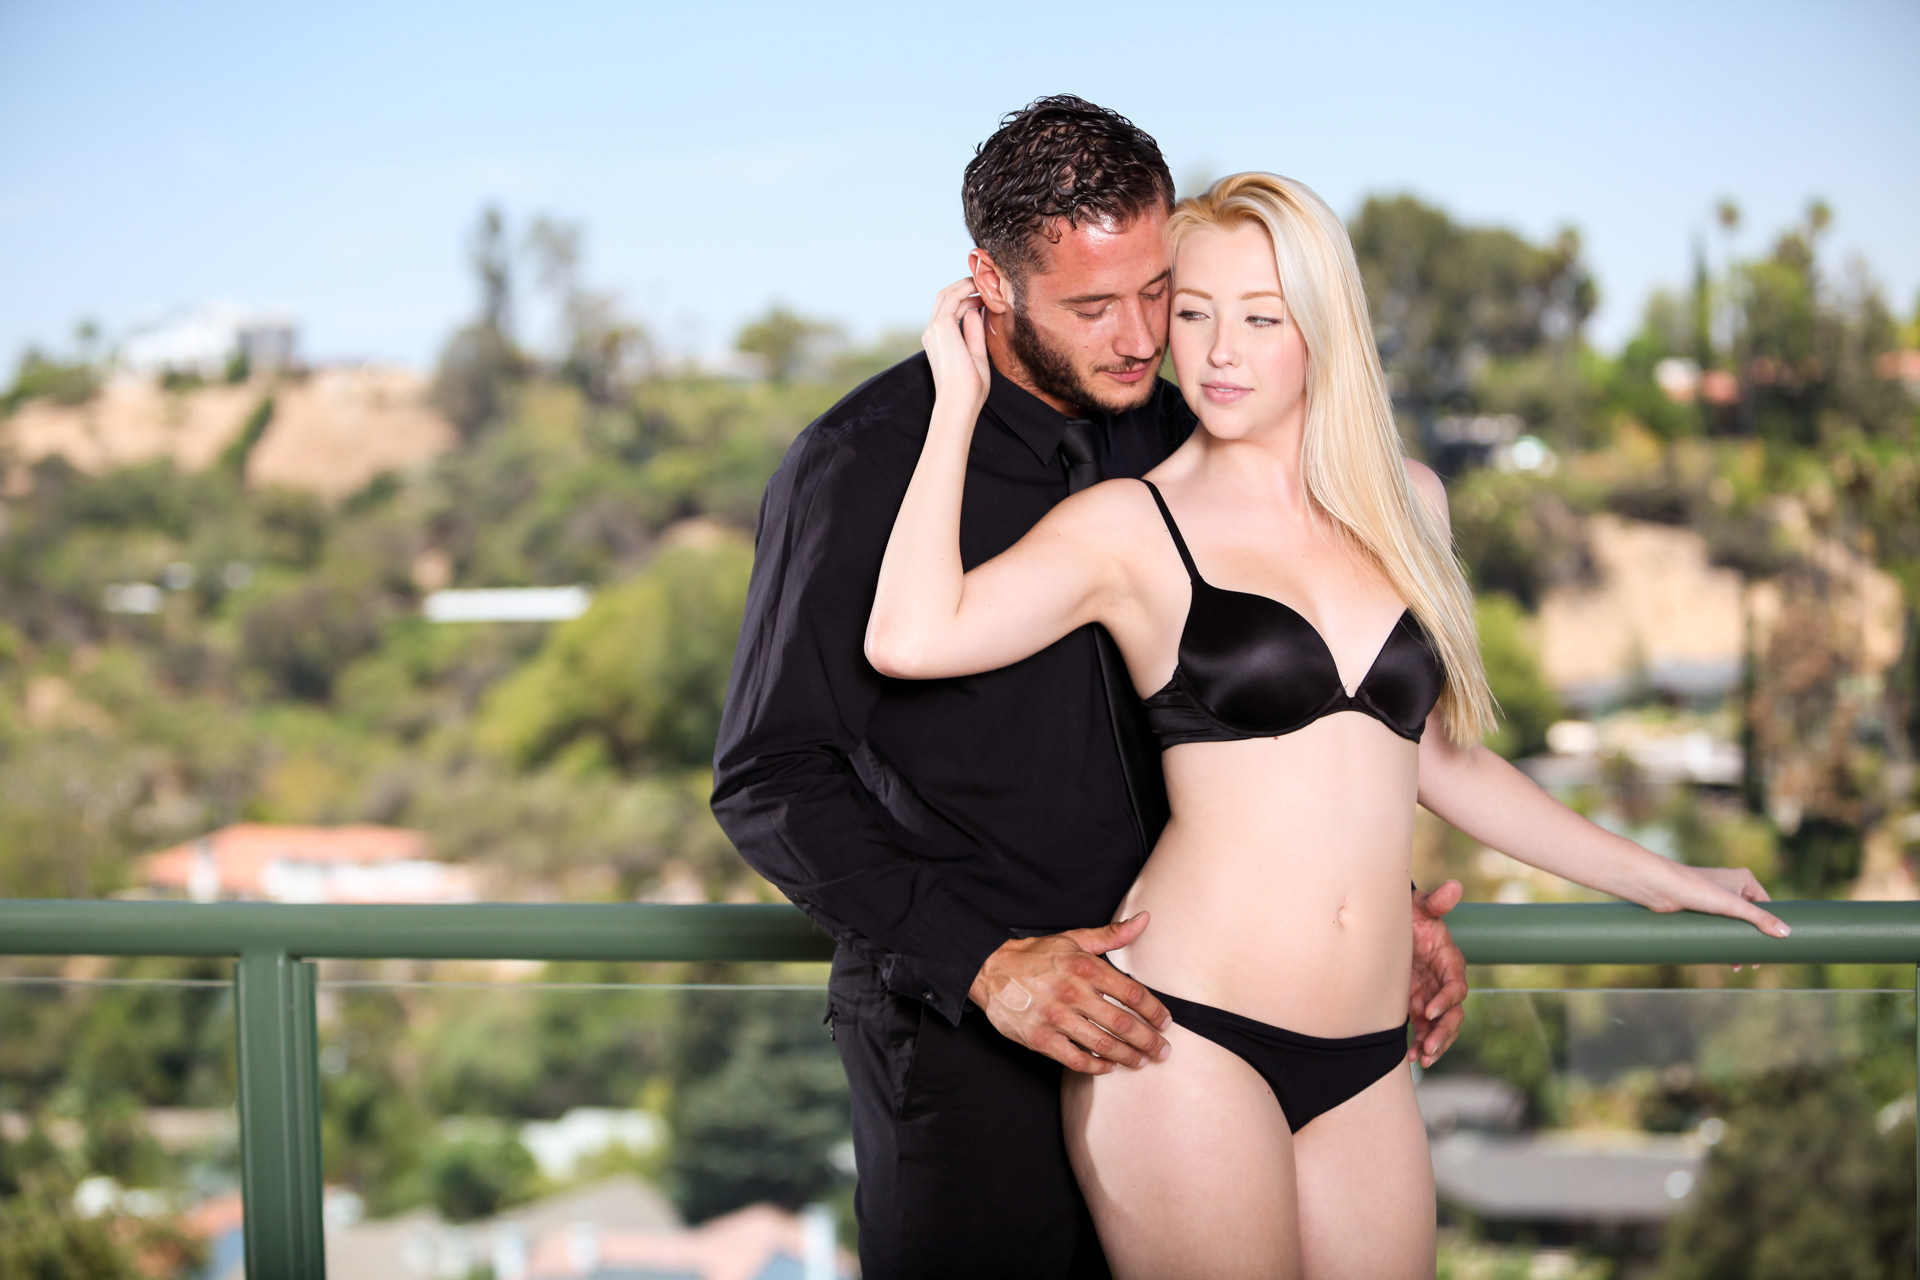 EroticaX – You're The One – Samantha Rone